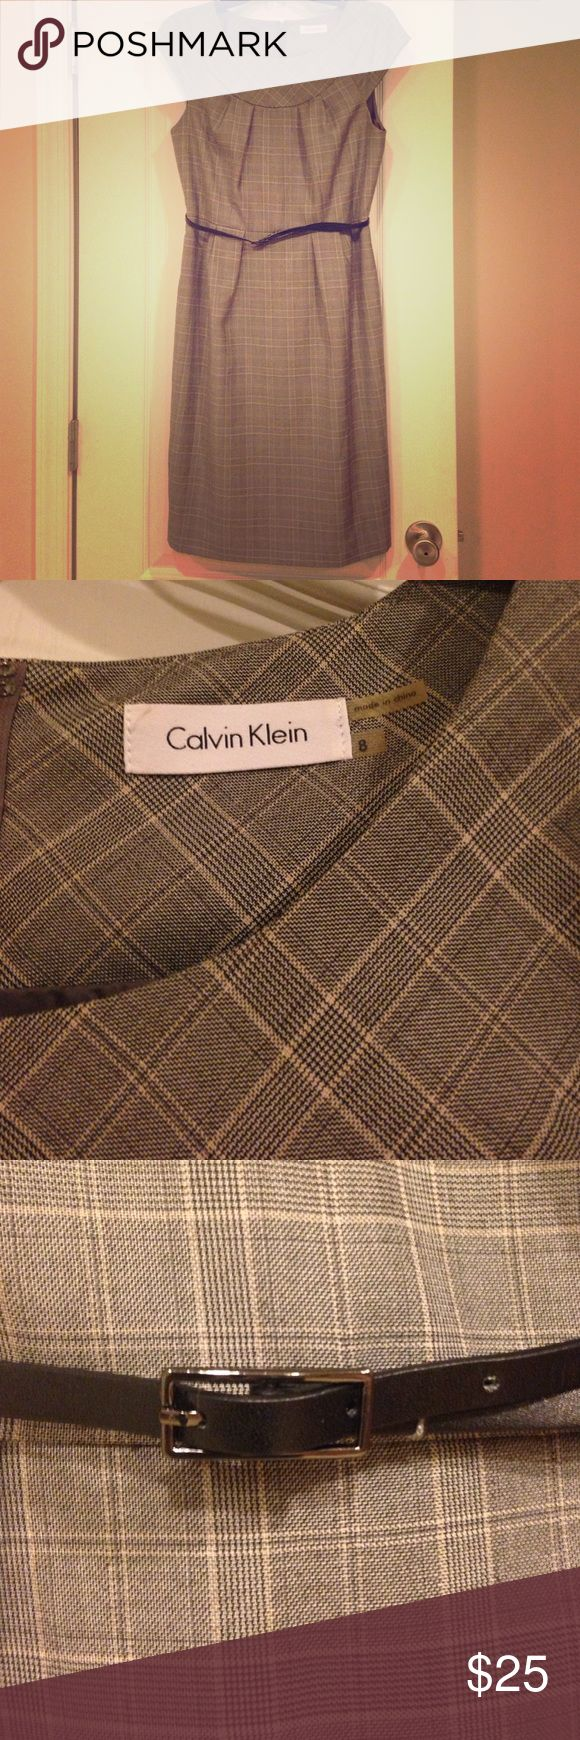 Classy Calvin Klein Professional Dress Stunning Business Professional Calvin Klein Women's Dress. Would be perfect for an interview or job! Knee- length. Comes with belt. EUC other than small wear to belt- dress is perfect! Size 8. Check out my other listings for bundle deals! Calvin Klein Dresses